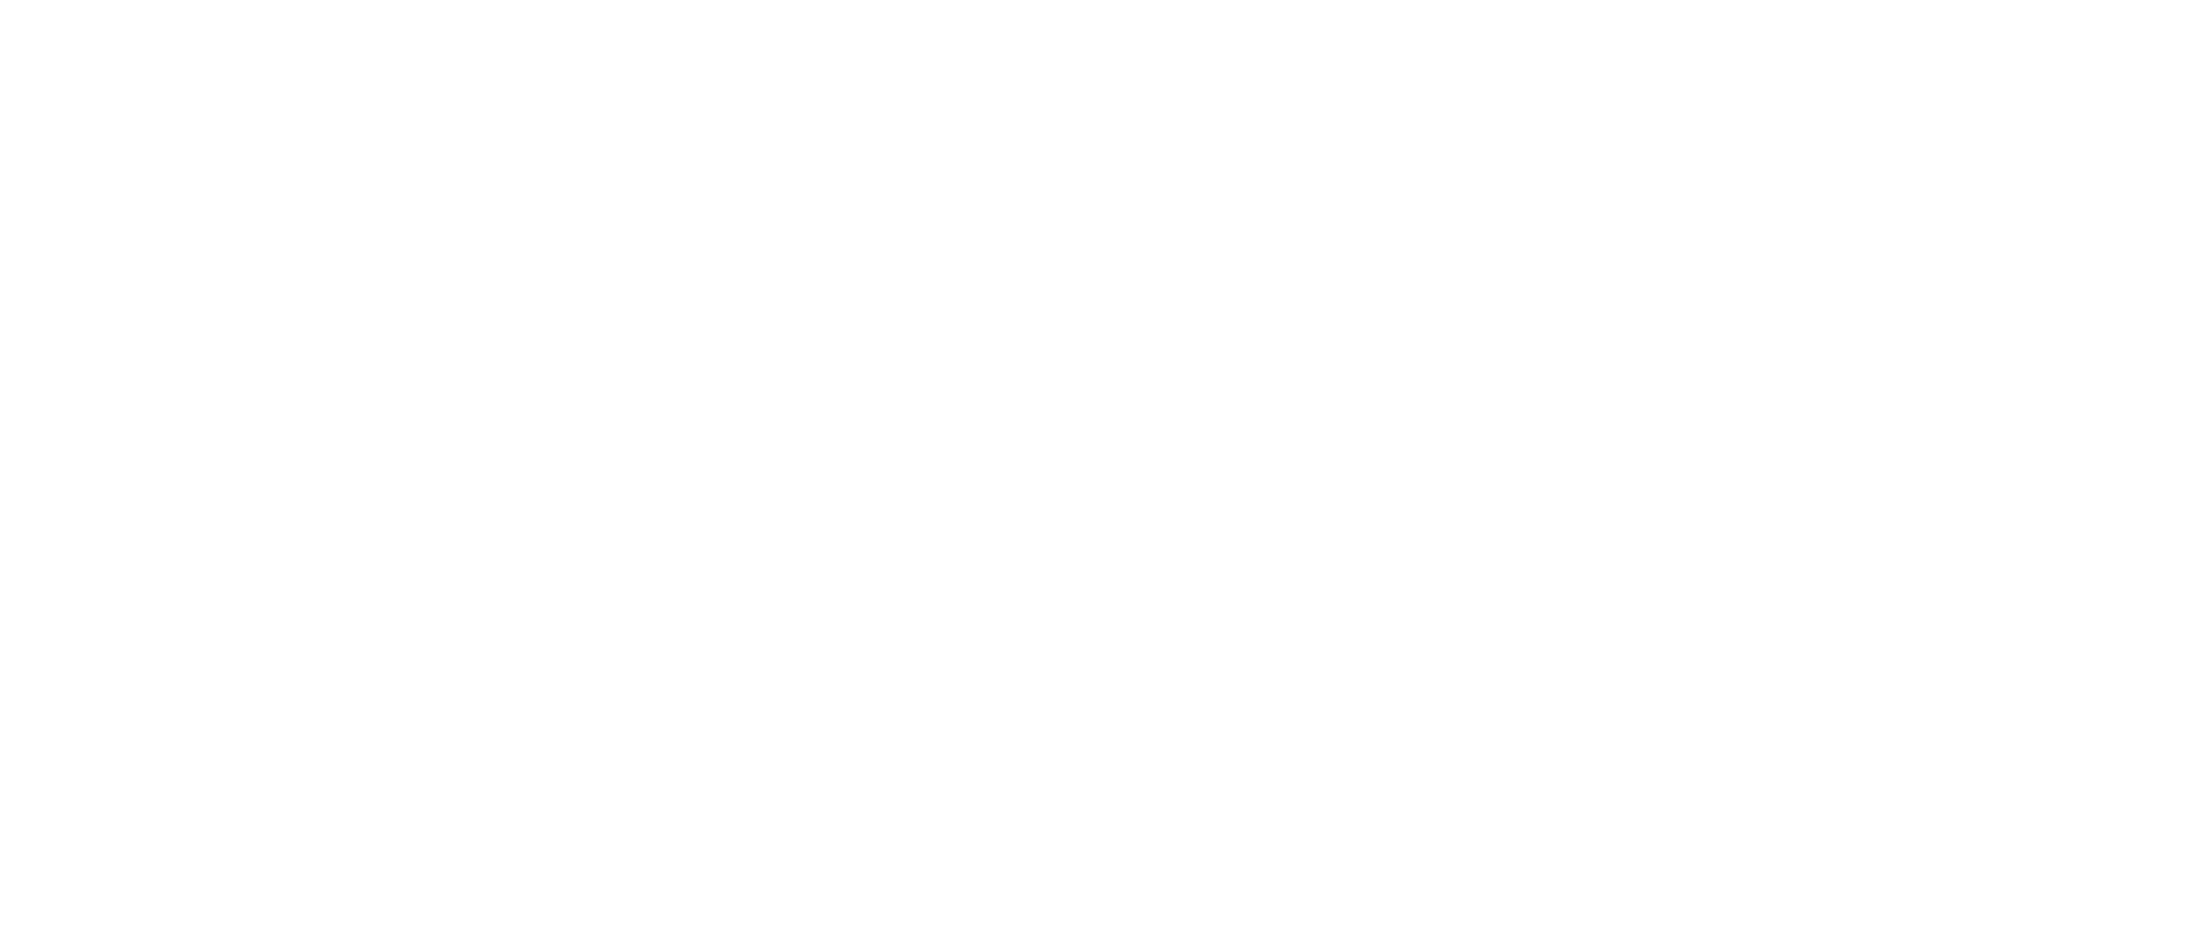 Download Guess Watches Logo Black And White Twitter White Icon Png Full Size Png Image Pngkit